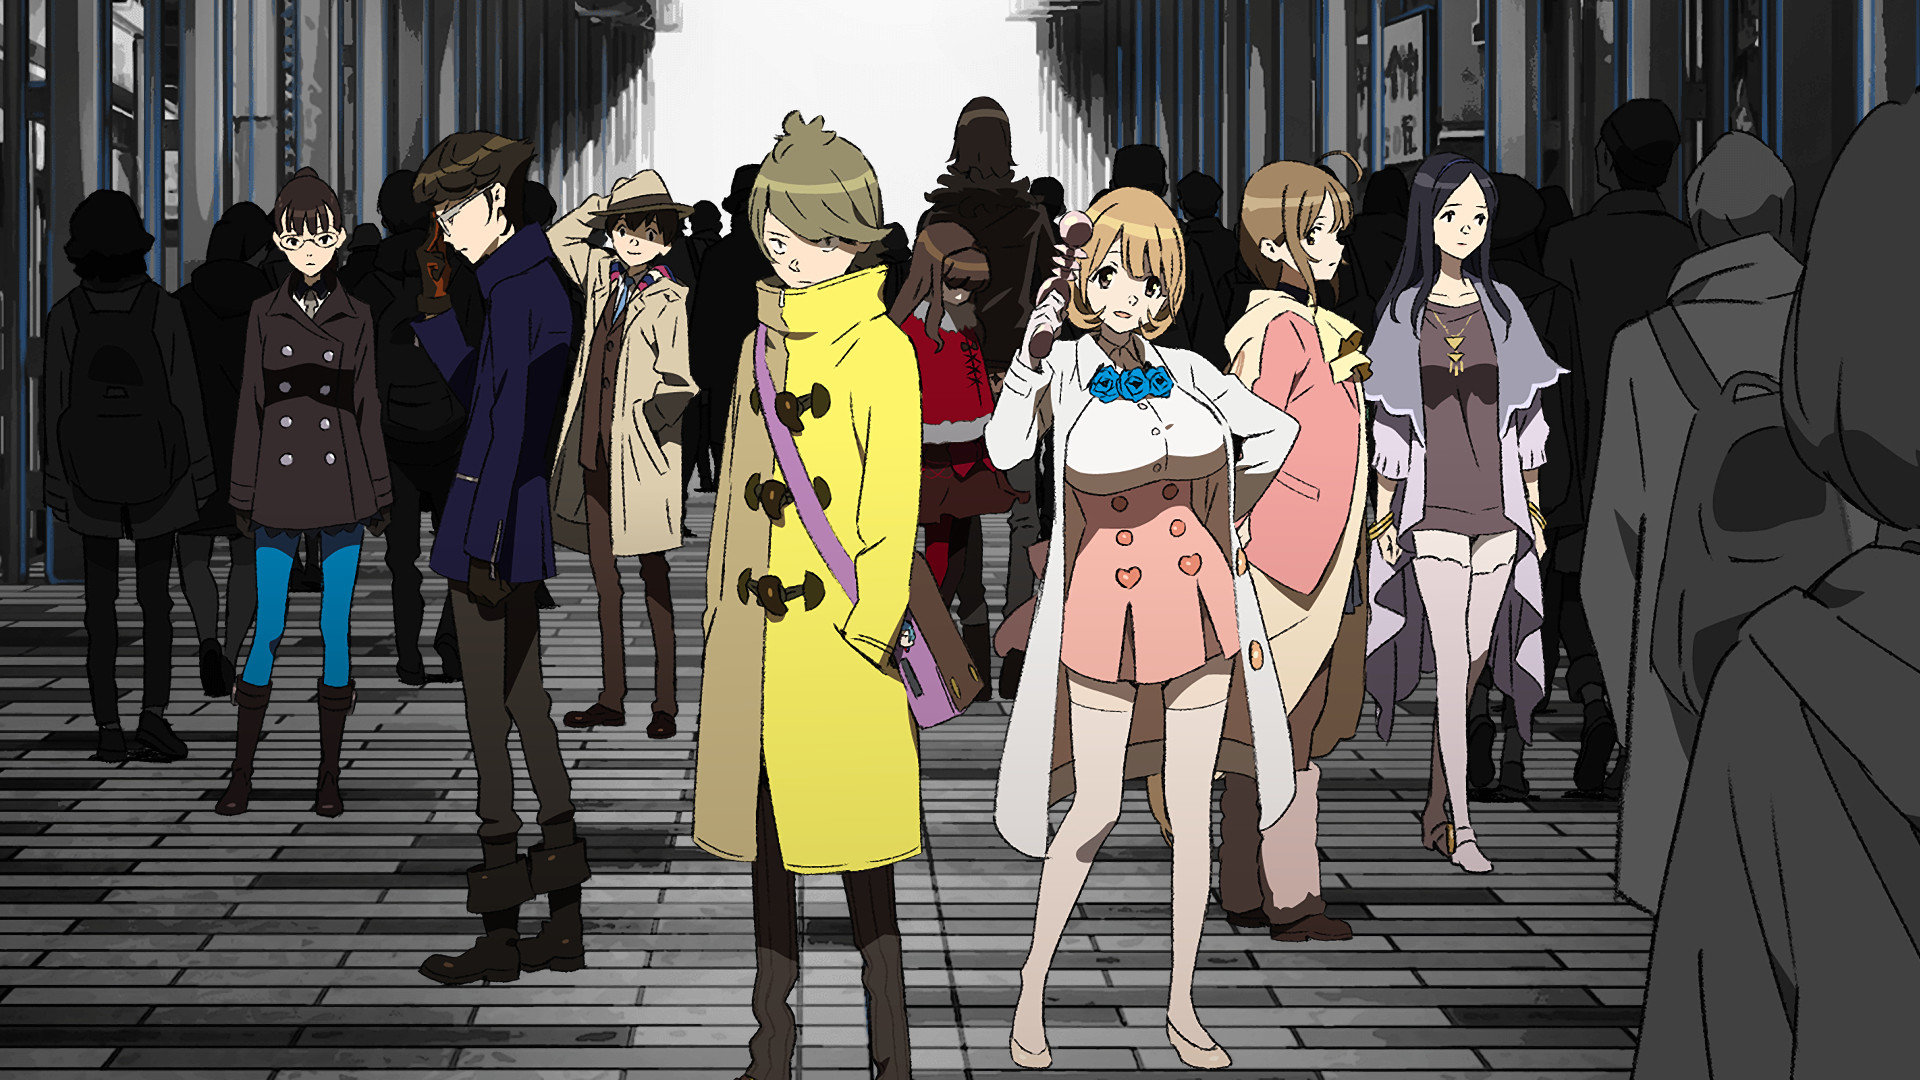 High resolution Occultic Nine full hd 1920x1080 wallpaper ID:101937 for PC